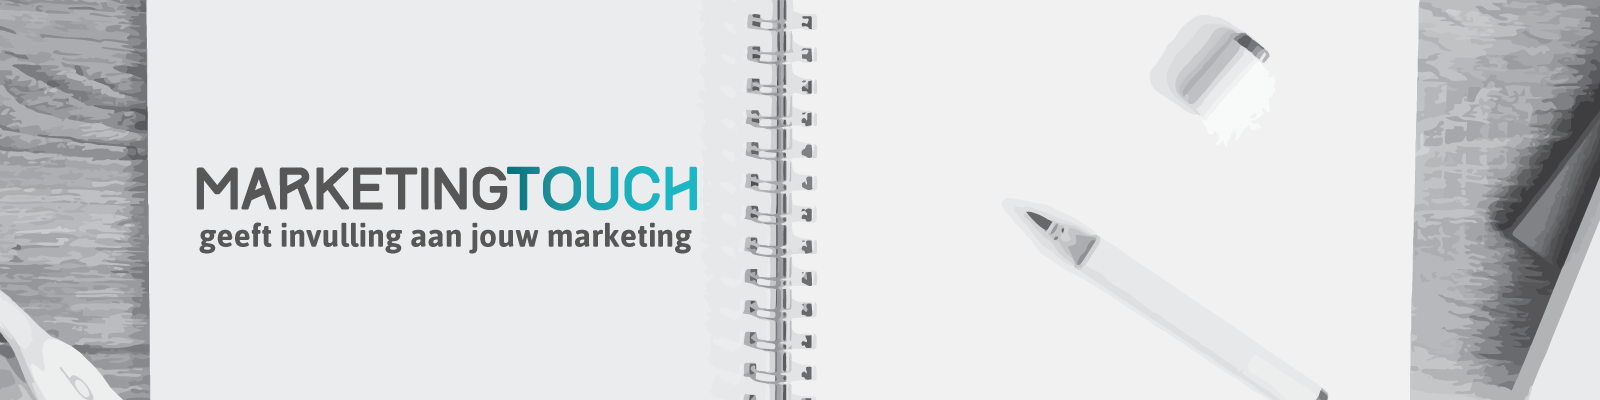 MarketingTouch-geeft-invulling-aan-jouw-marketing-grijs